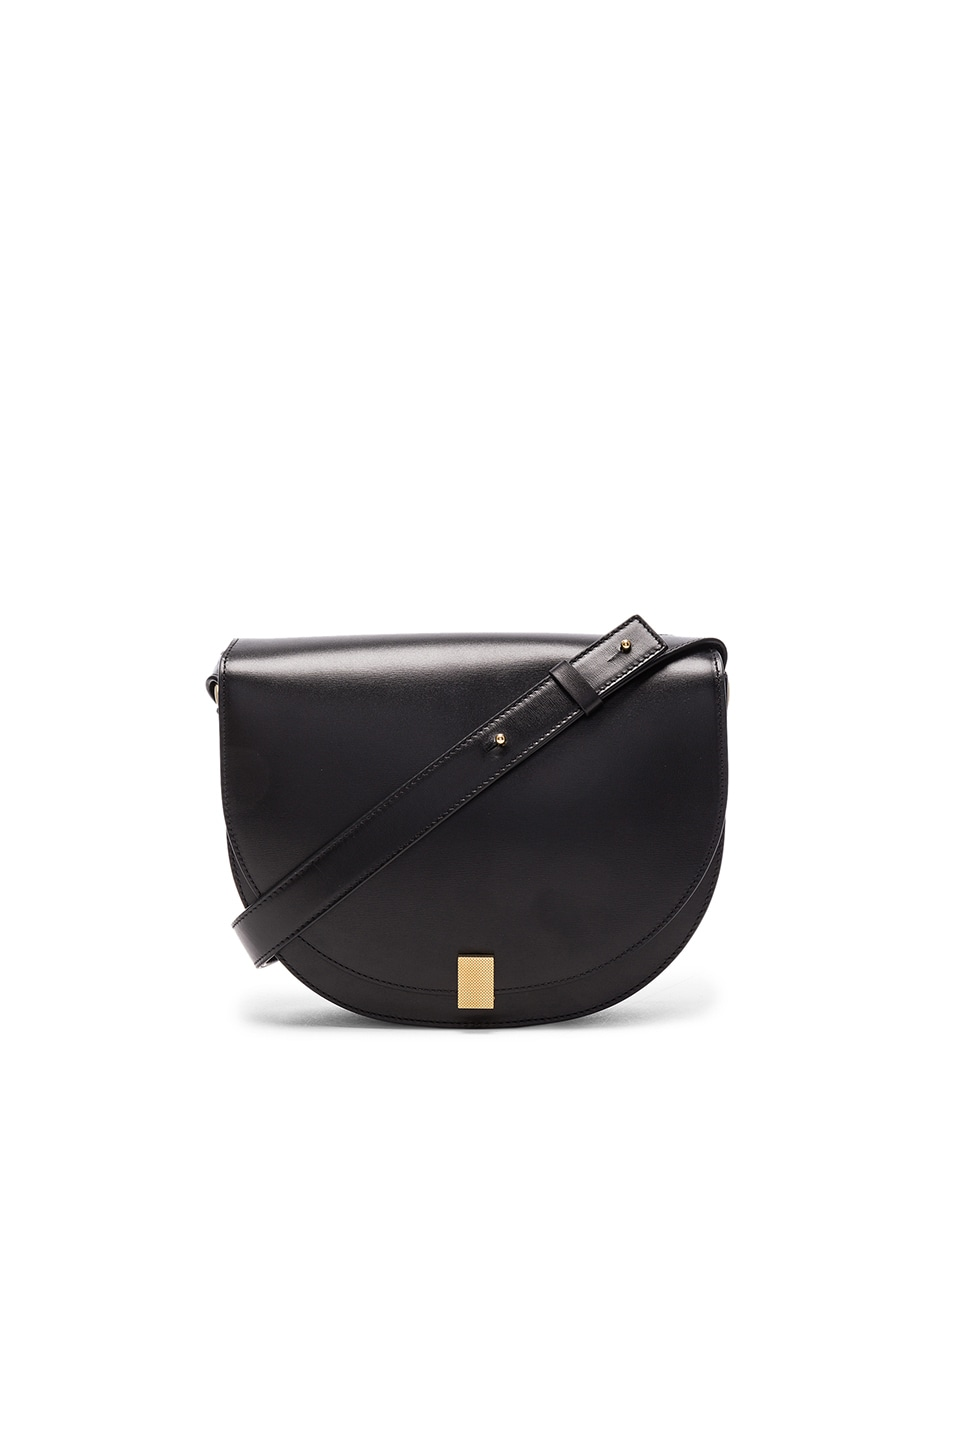 Image 1 of Victoria Beckham Half Moon Box Bag in Black